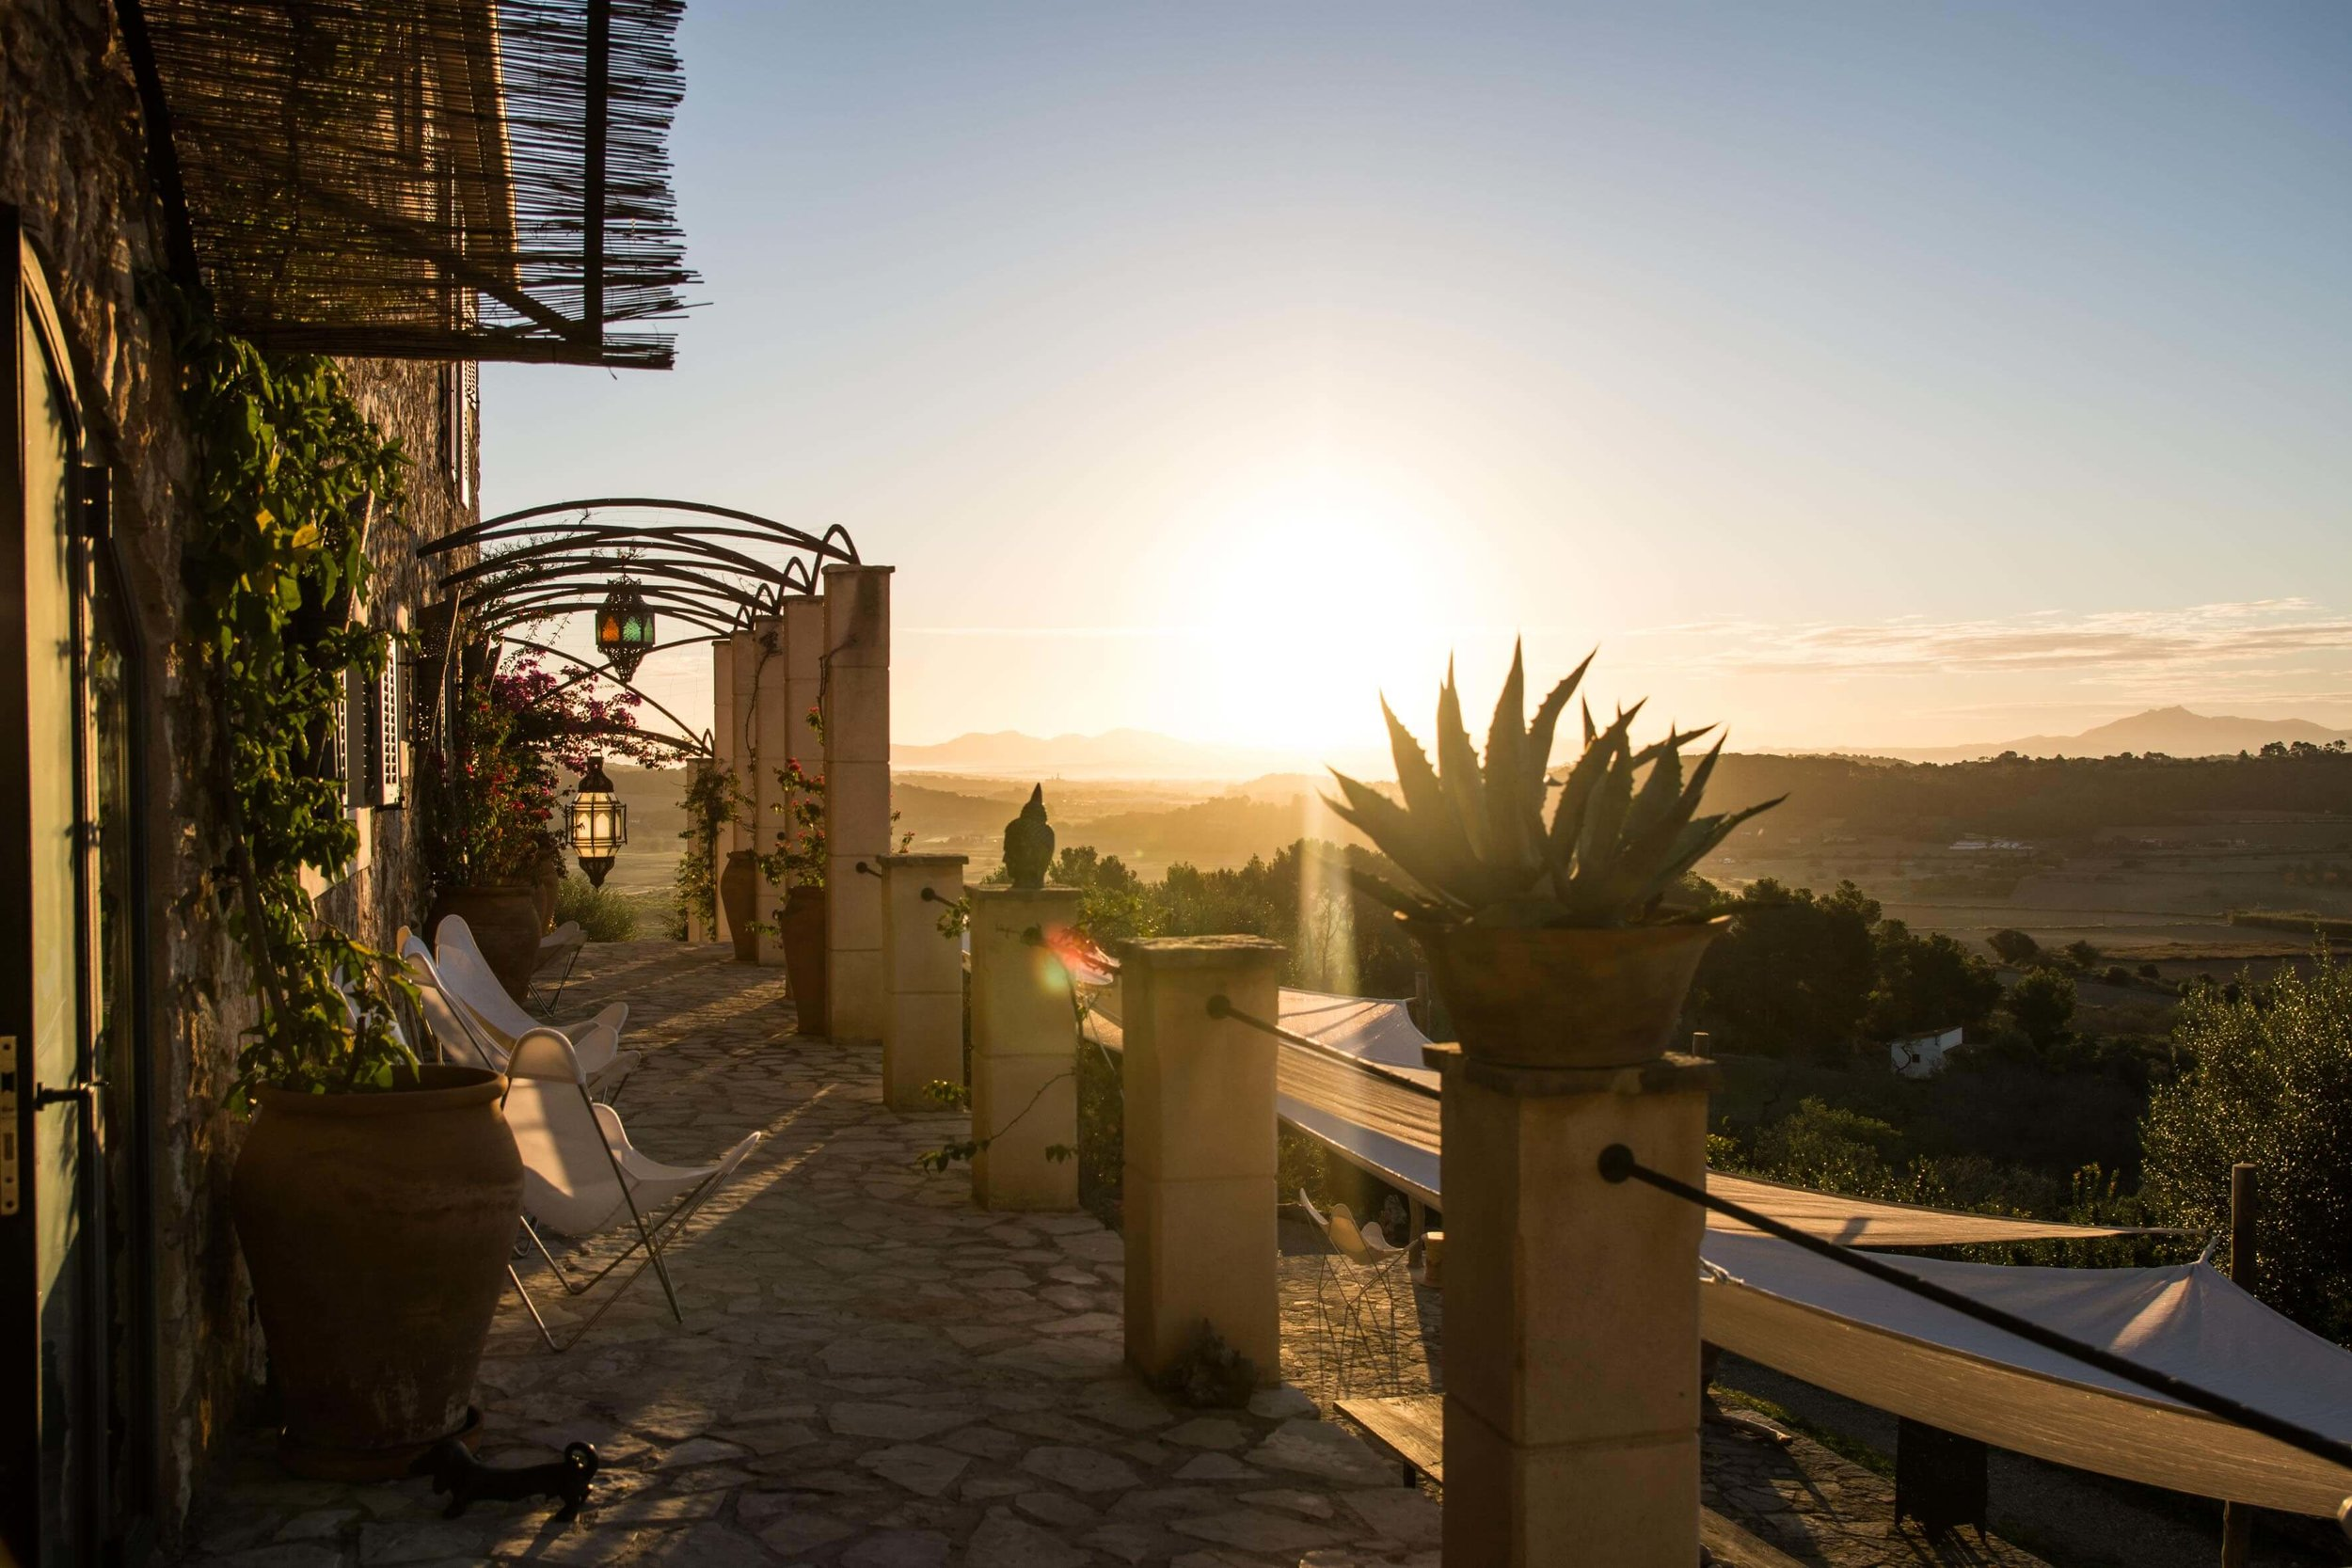 7 surprising wedding venues in Spain